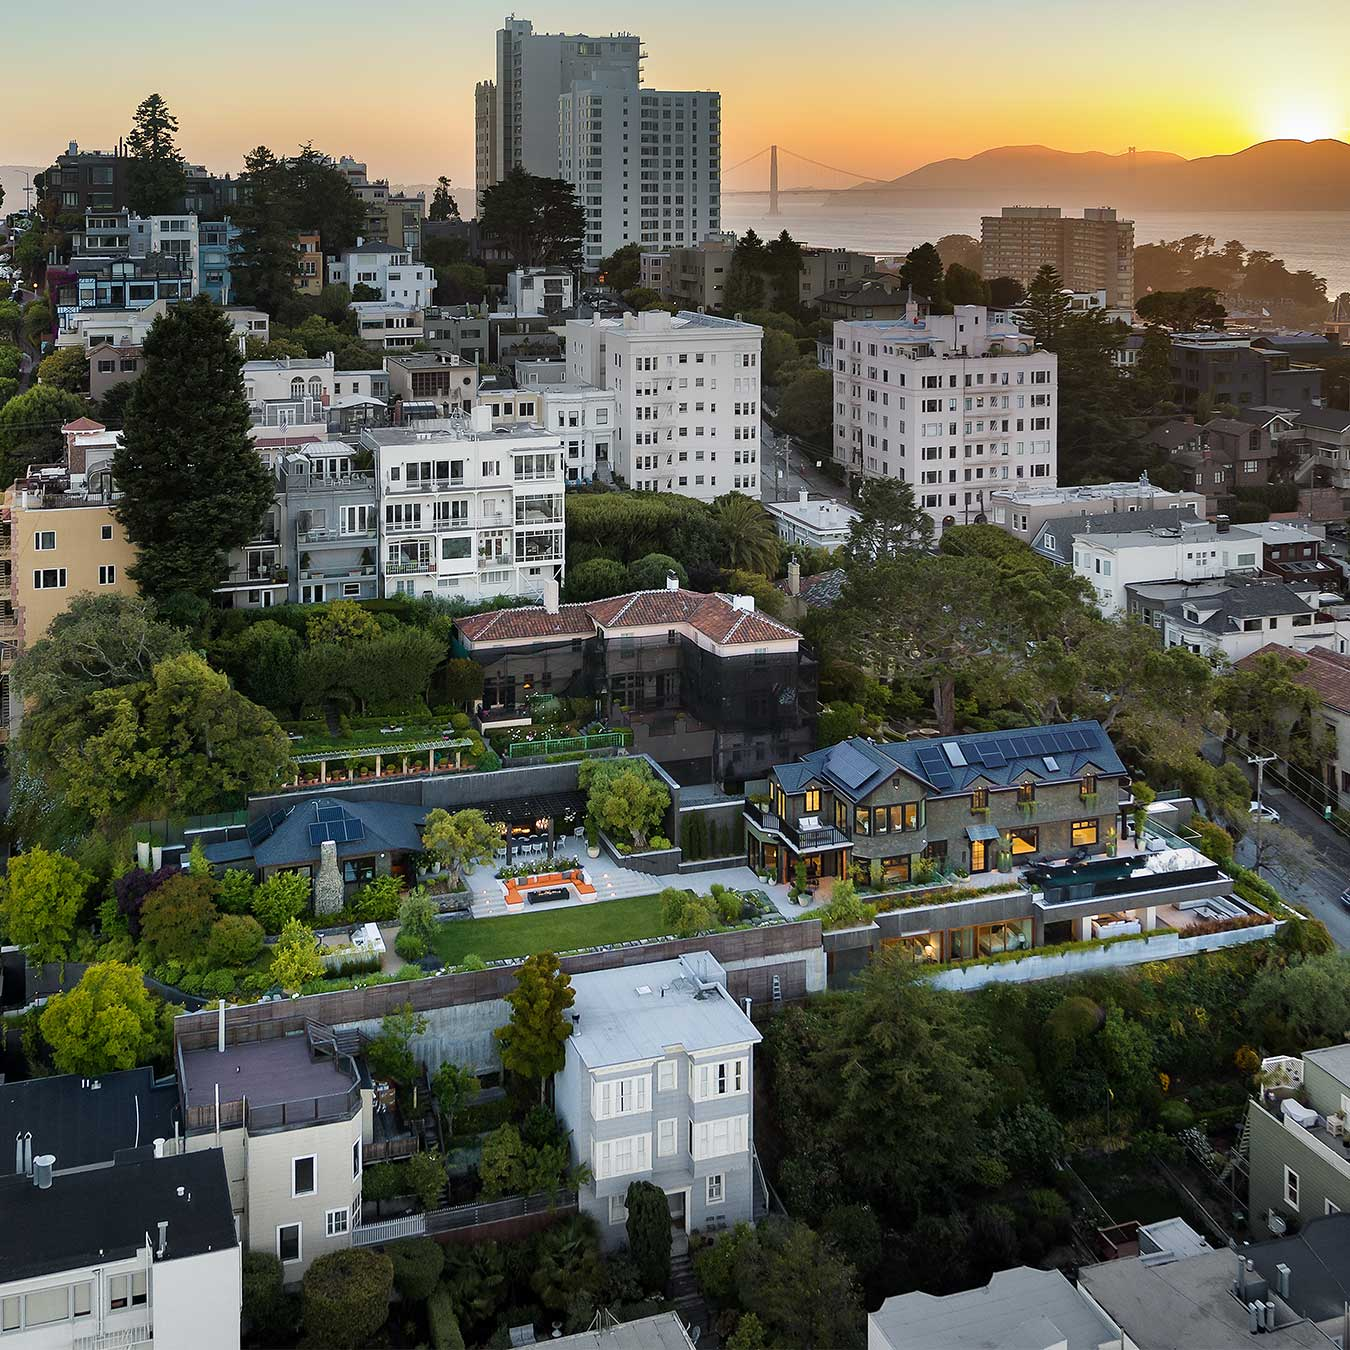 Residence 950 on San Francisco hill at sunset with Golden Gate Bridge